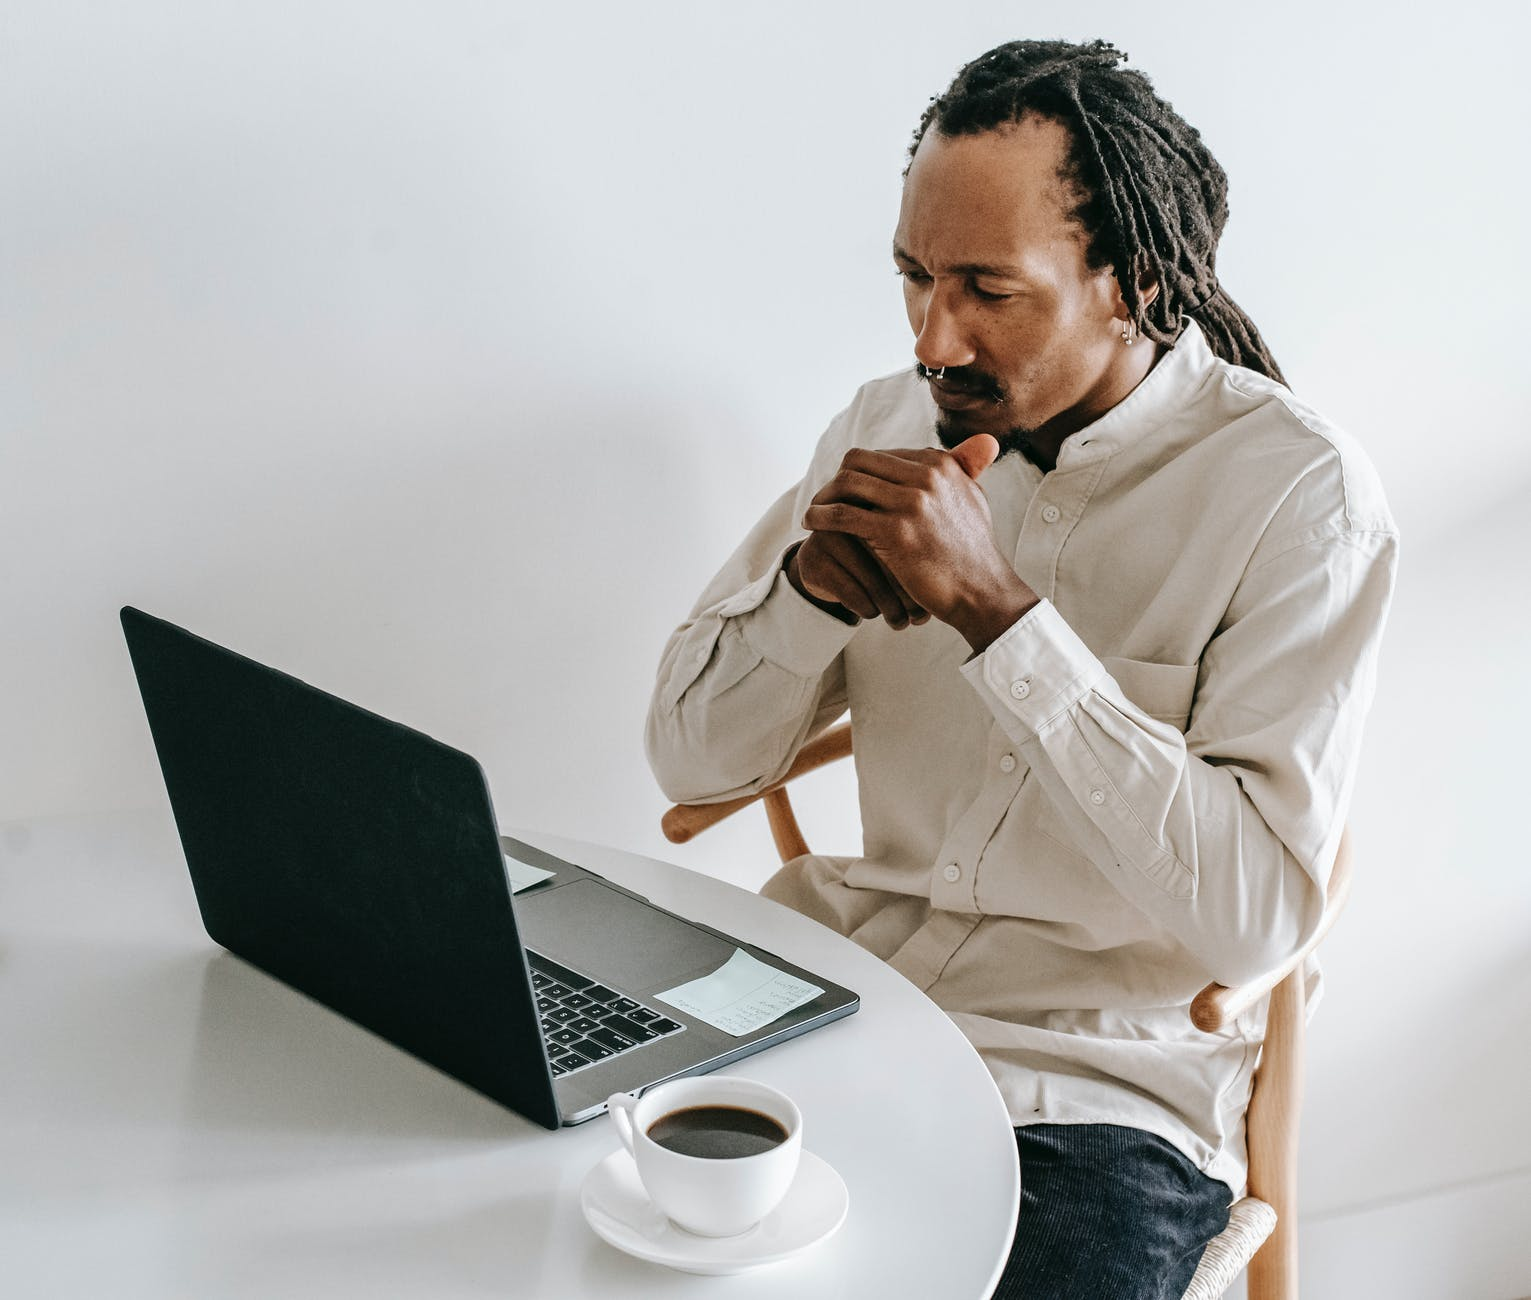 serious black man working on laptop in light room